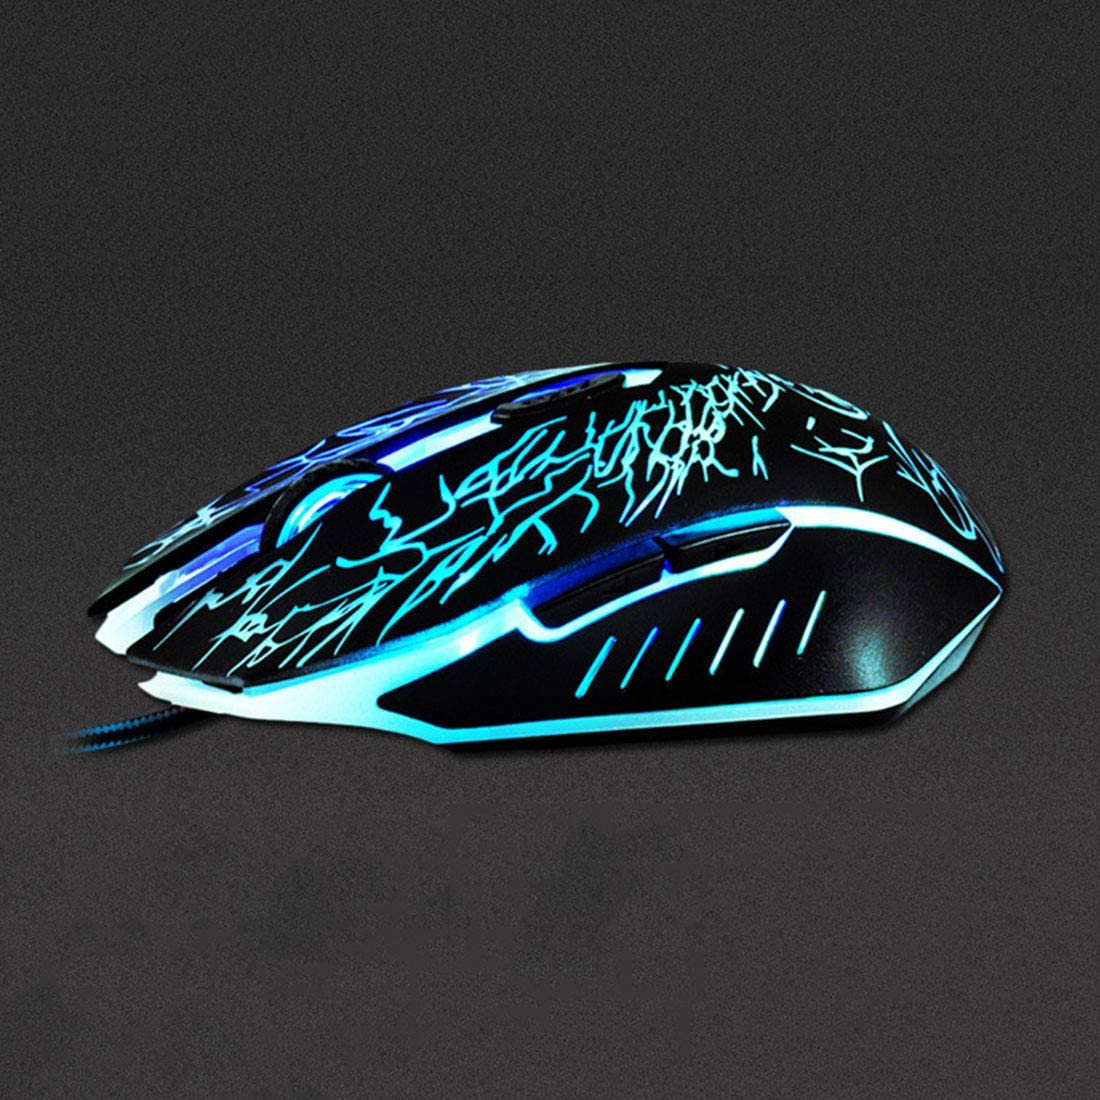 Hexiaoyi Wired Mouse 4 Adjustable DPI Levels 800//1200//1600//2400DPI LED 7 Circular /& Breathing LED Light 6 Buttons Mouse Color : Elegant Black+Exclusive Color Box